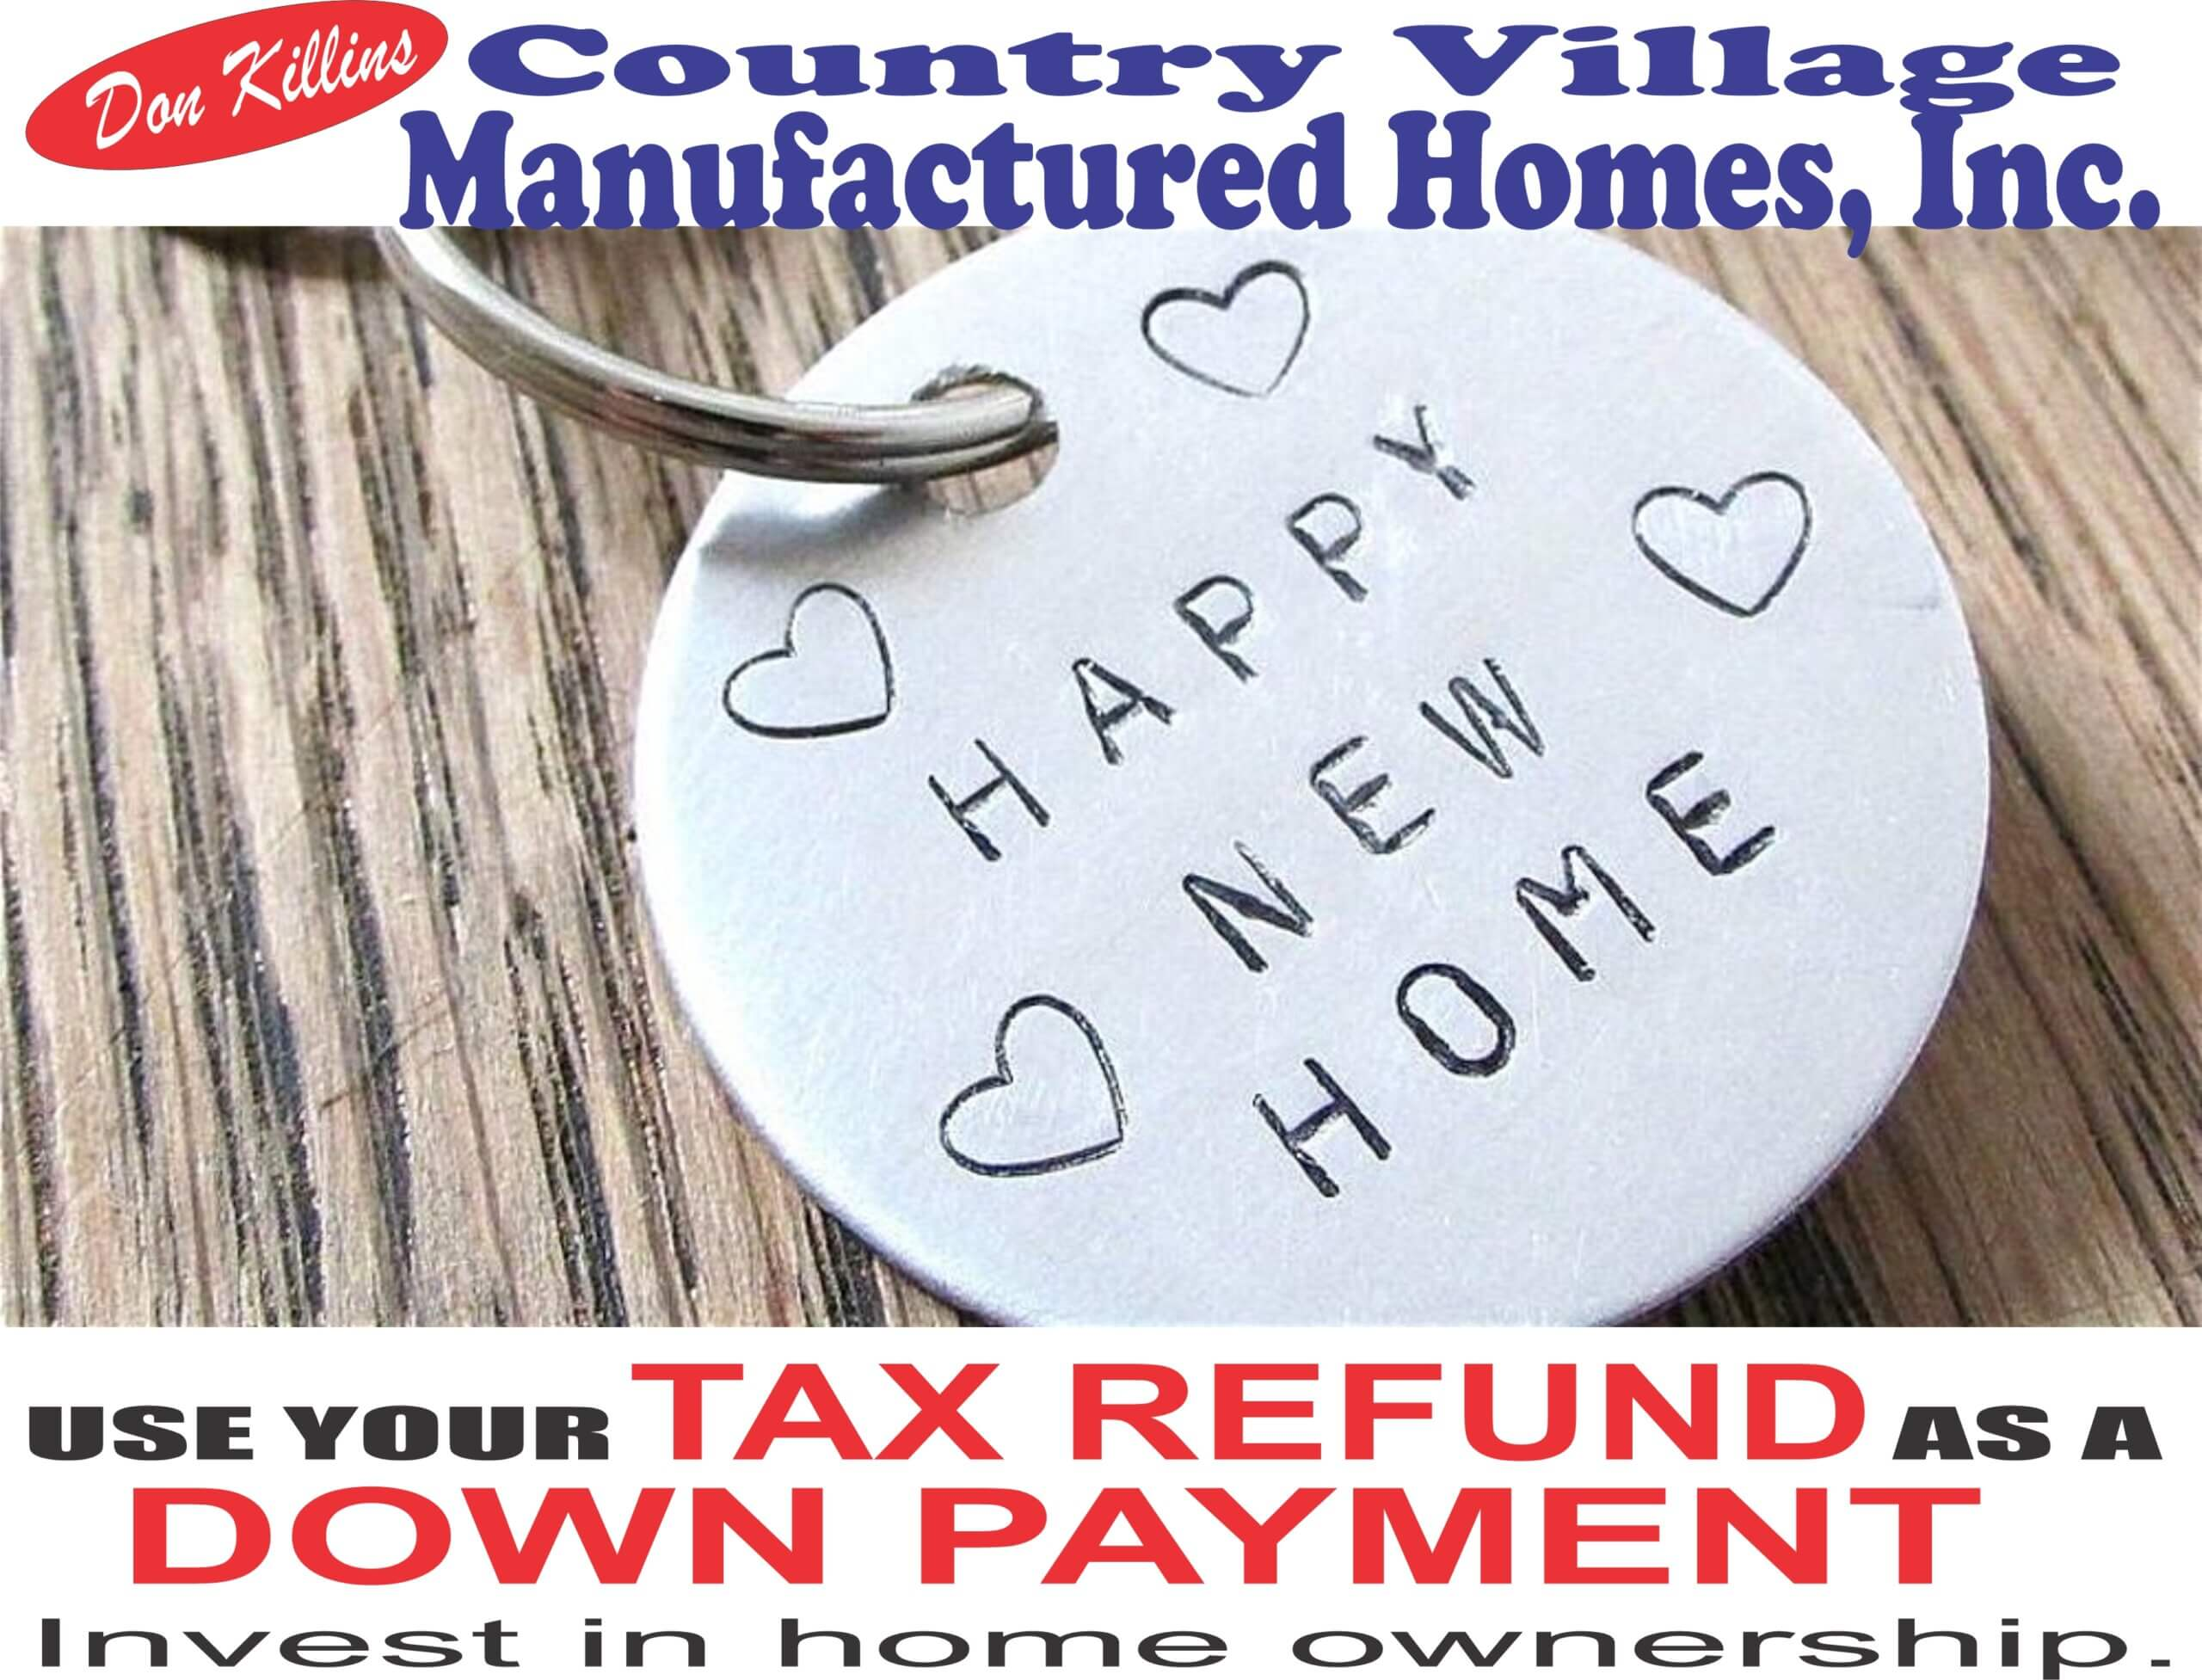 Use your tax refund as a down payment 02-01-2020